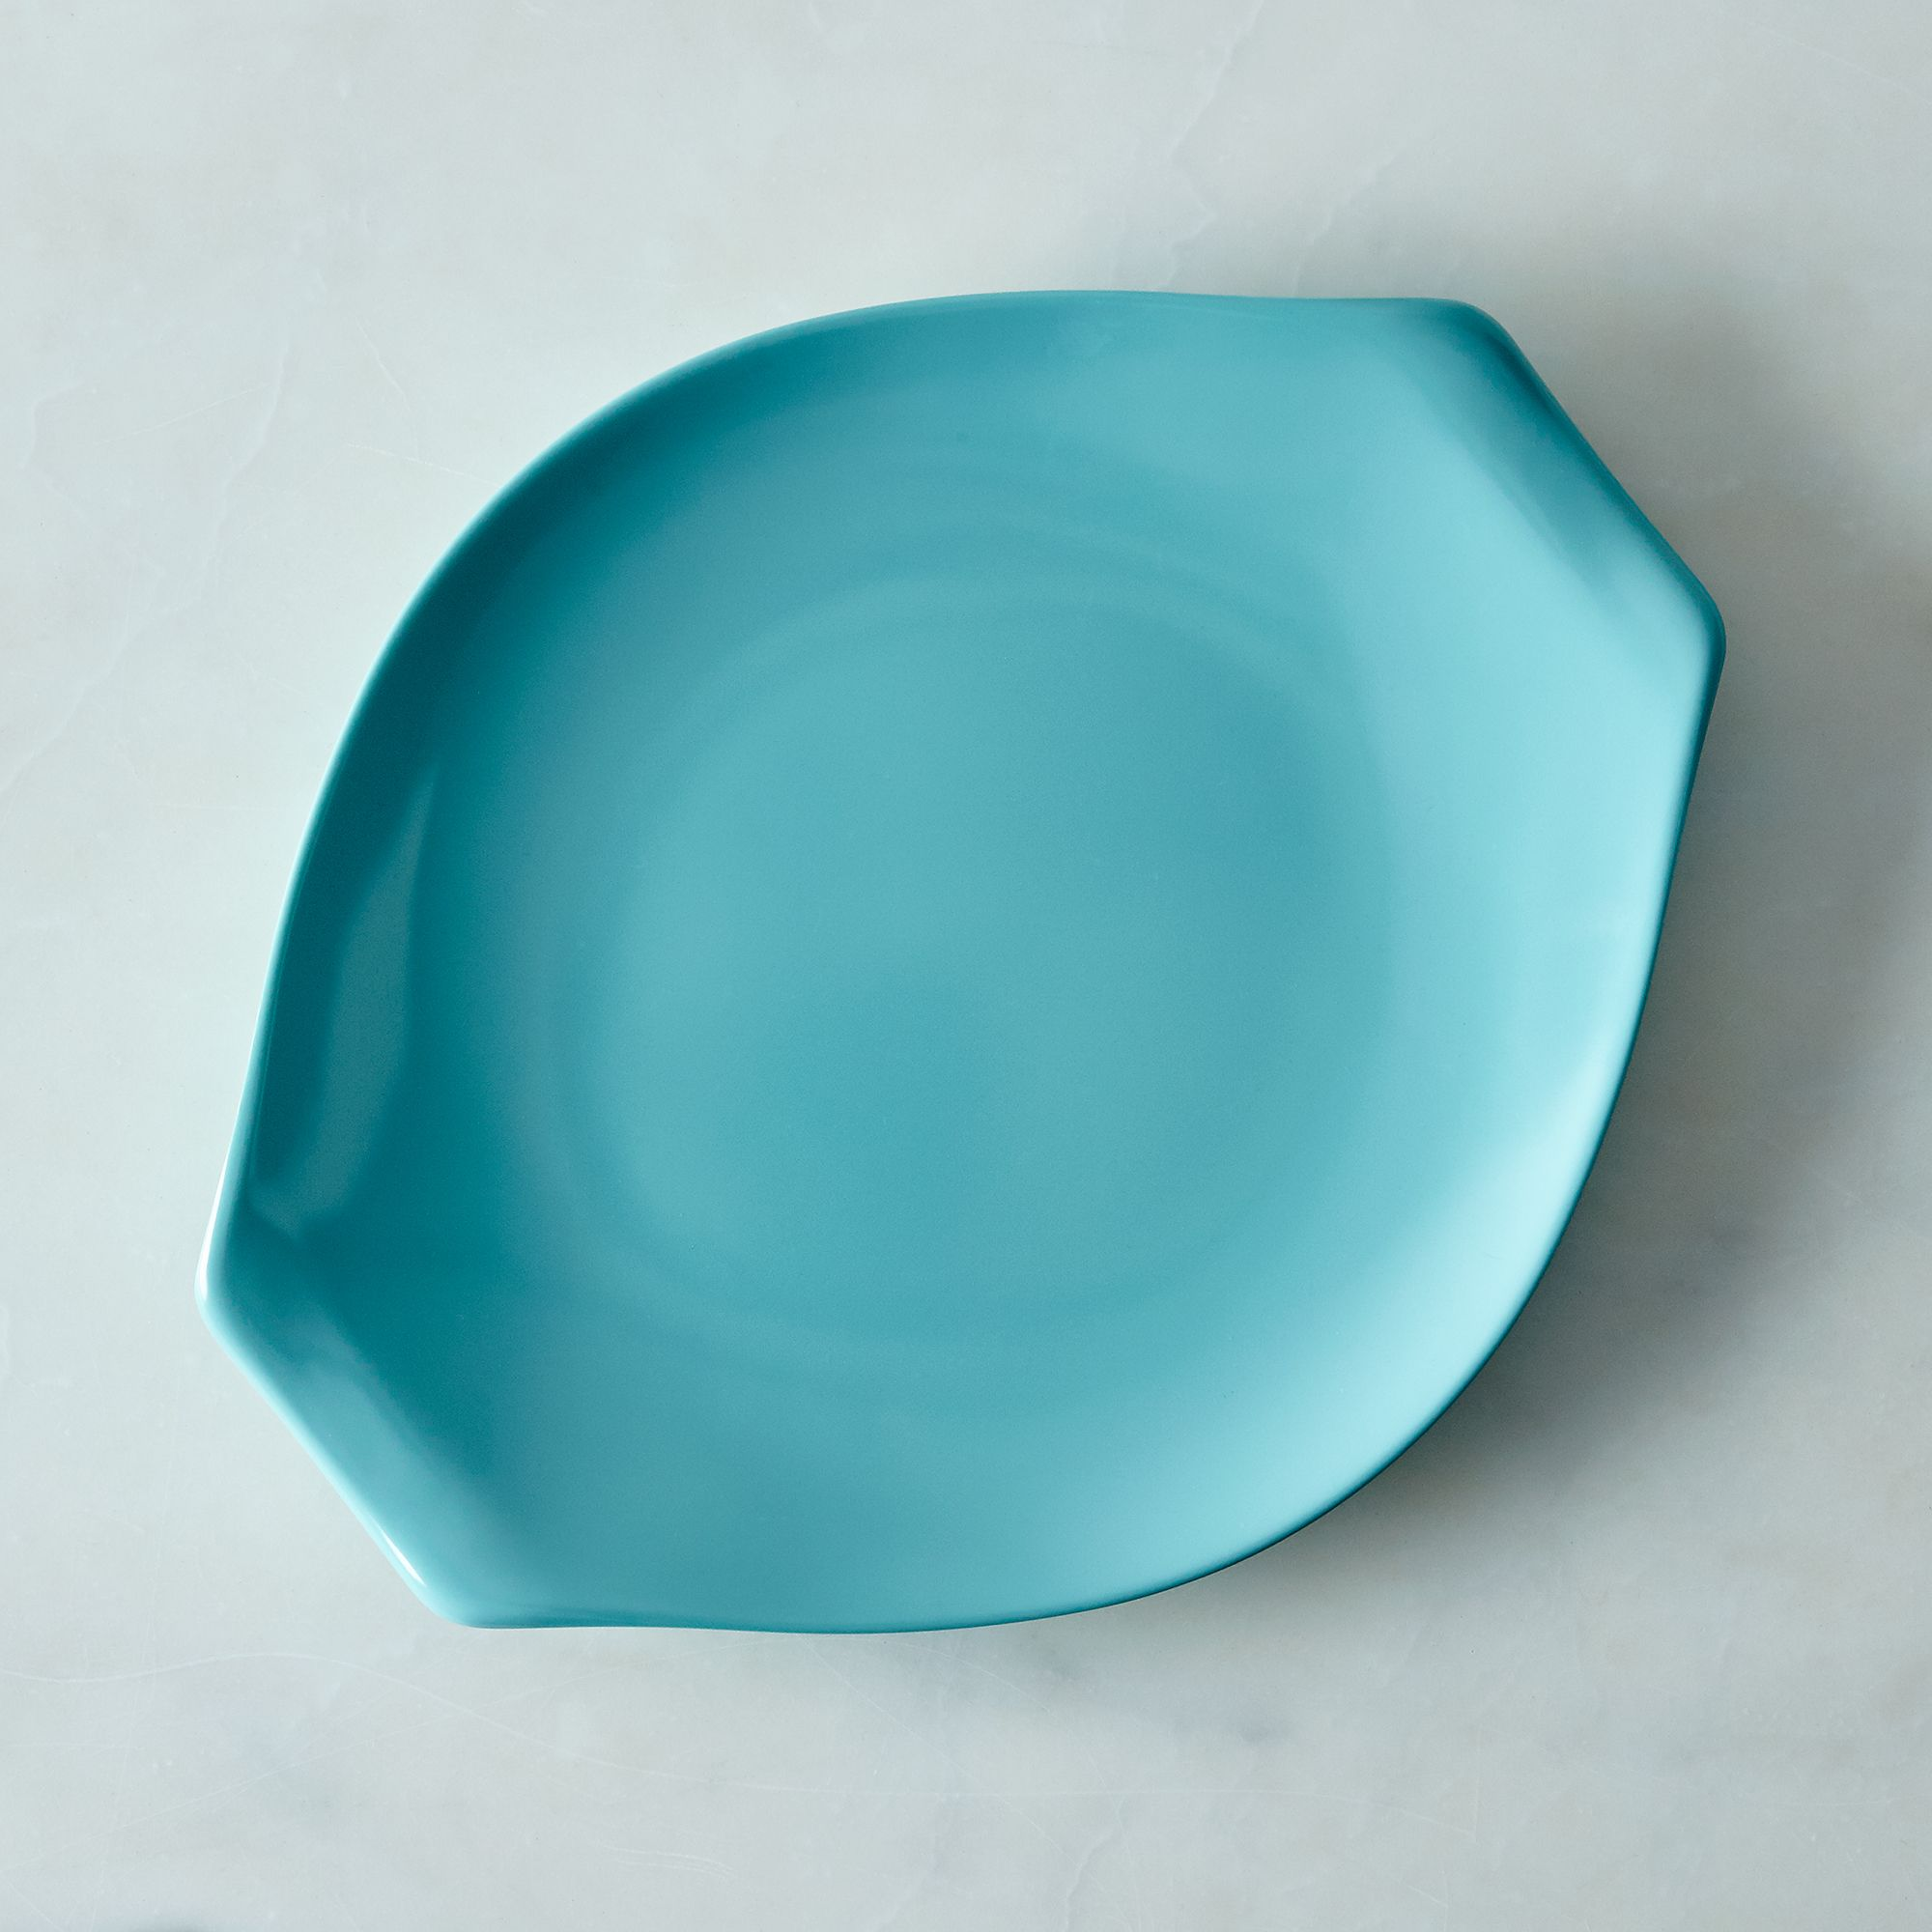 F69ae791 934a 4d98 bfd5 4f7219cb3907  2016 0411 bobs your uncle russel wright melamine dinnerware large platter aqua silo rocky luten 001